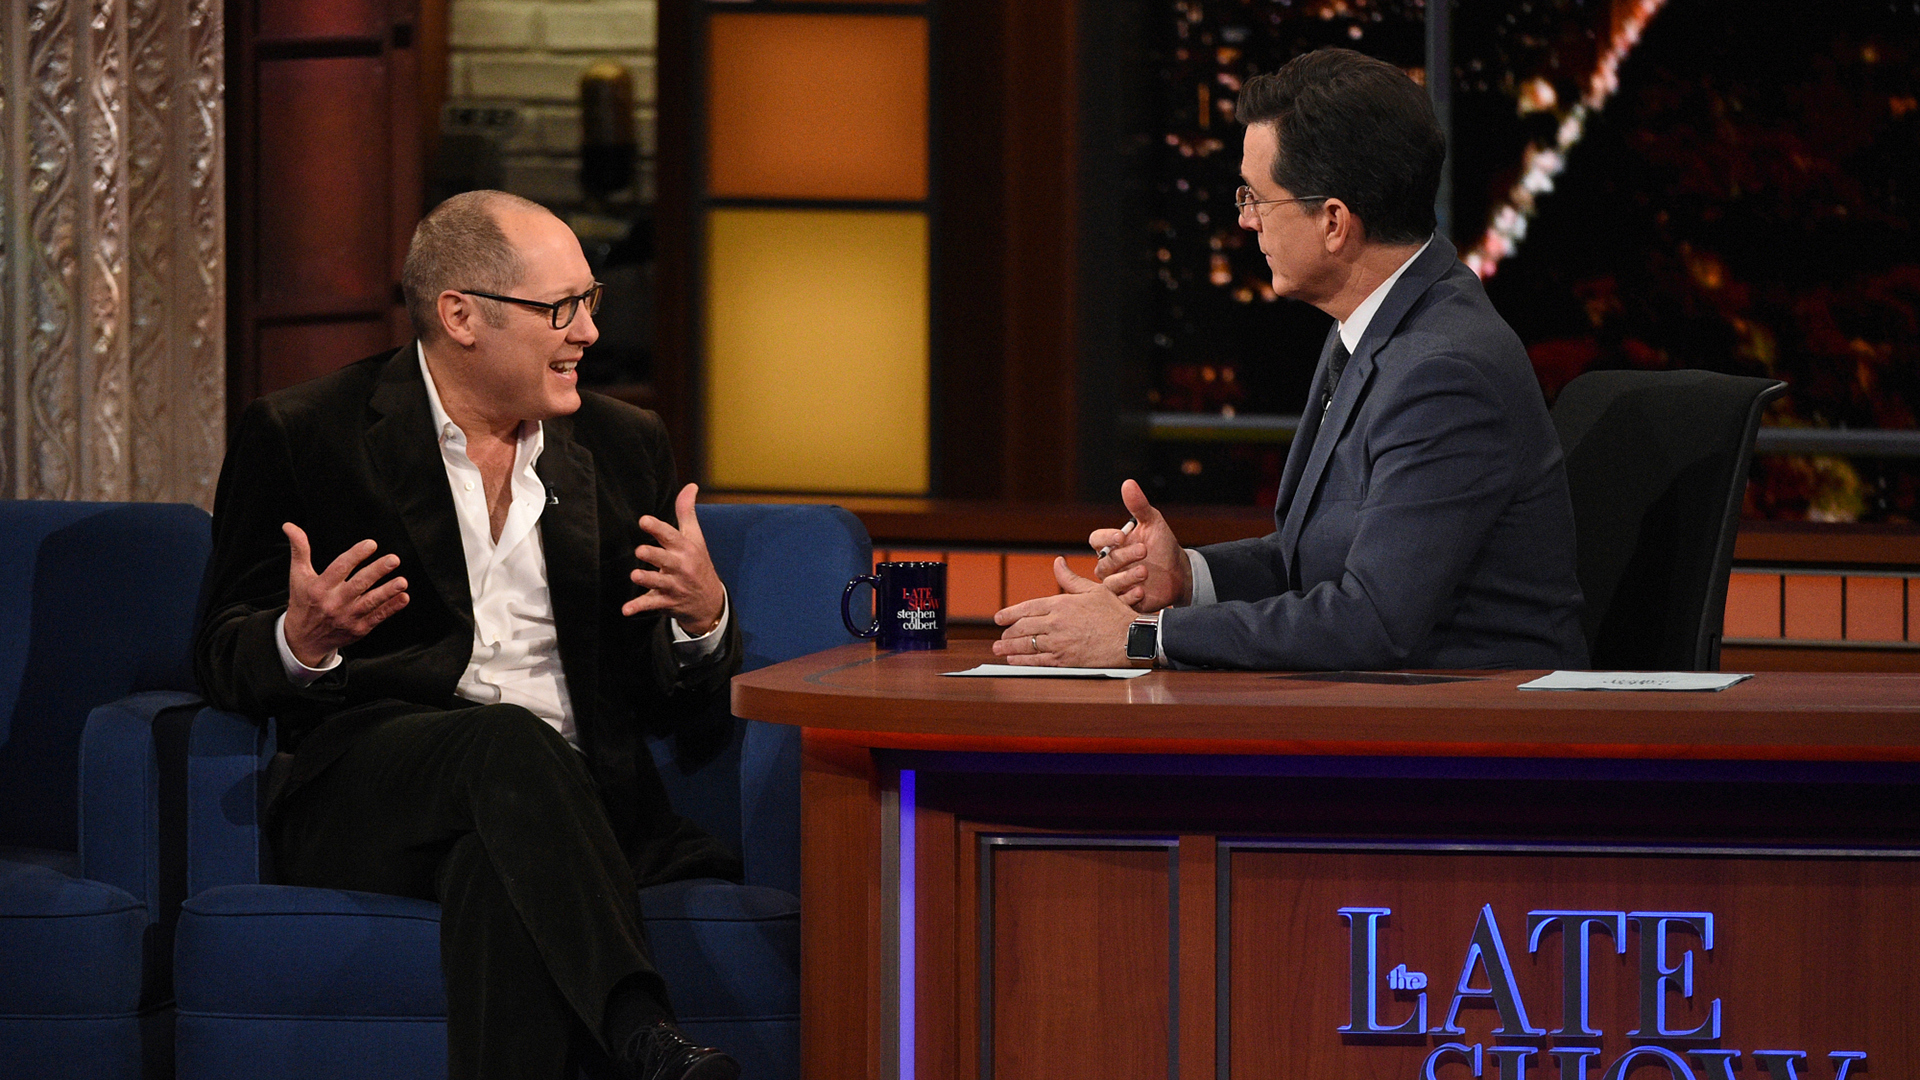 James Spader and Stephen Colbert